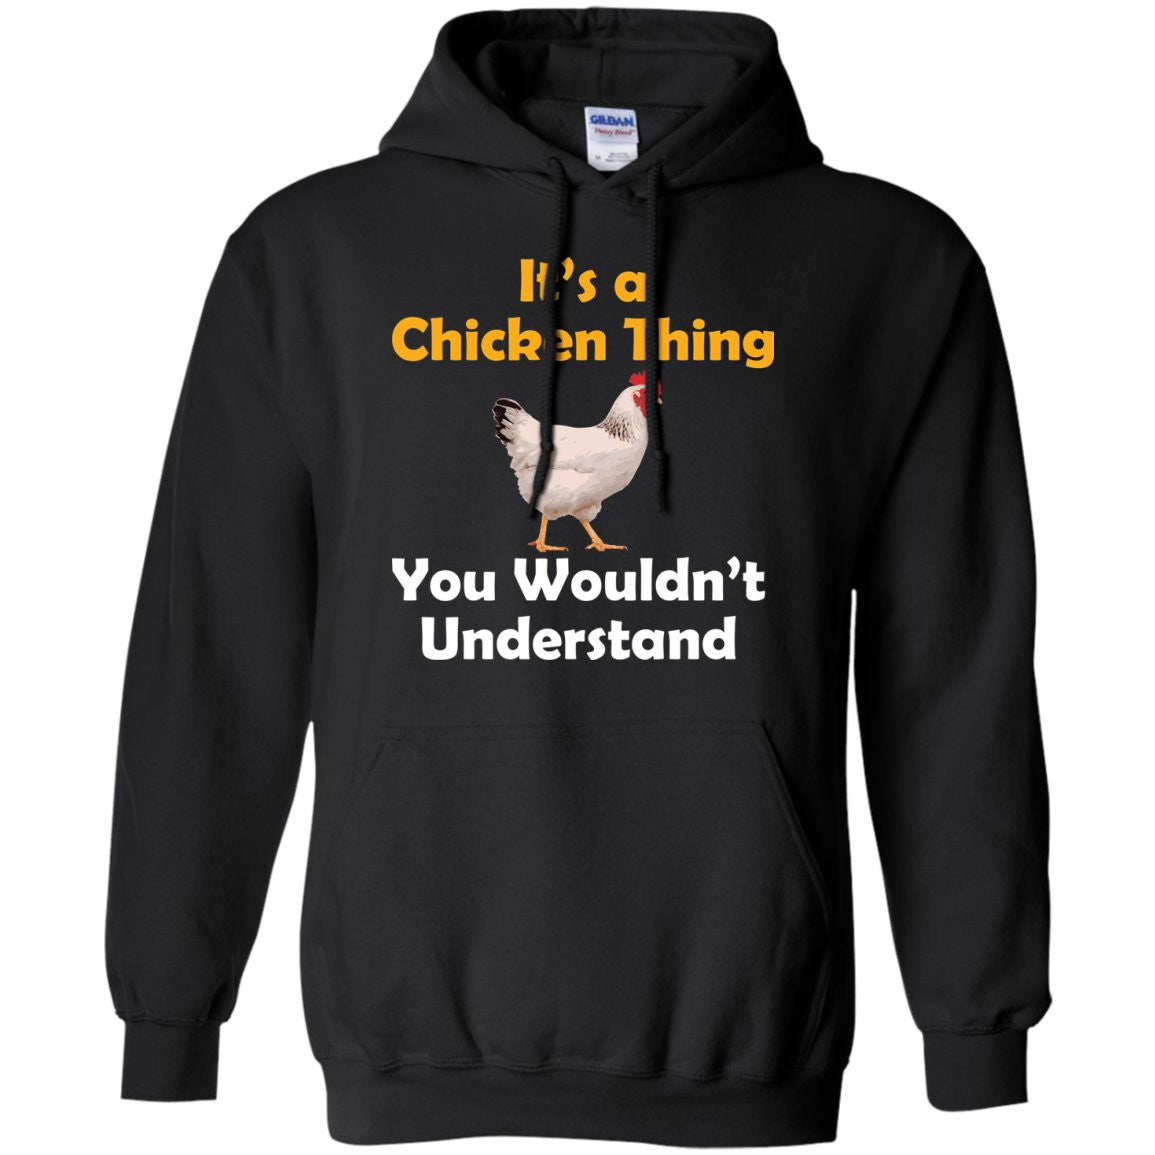 Funny Chicken Gift - Chicken Thing Shirt  Pullover Hoodie 8 oz